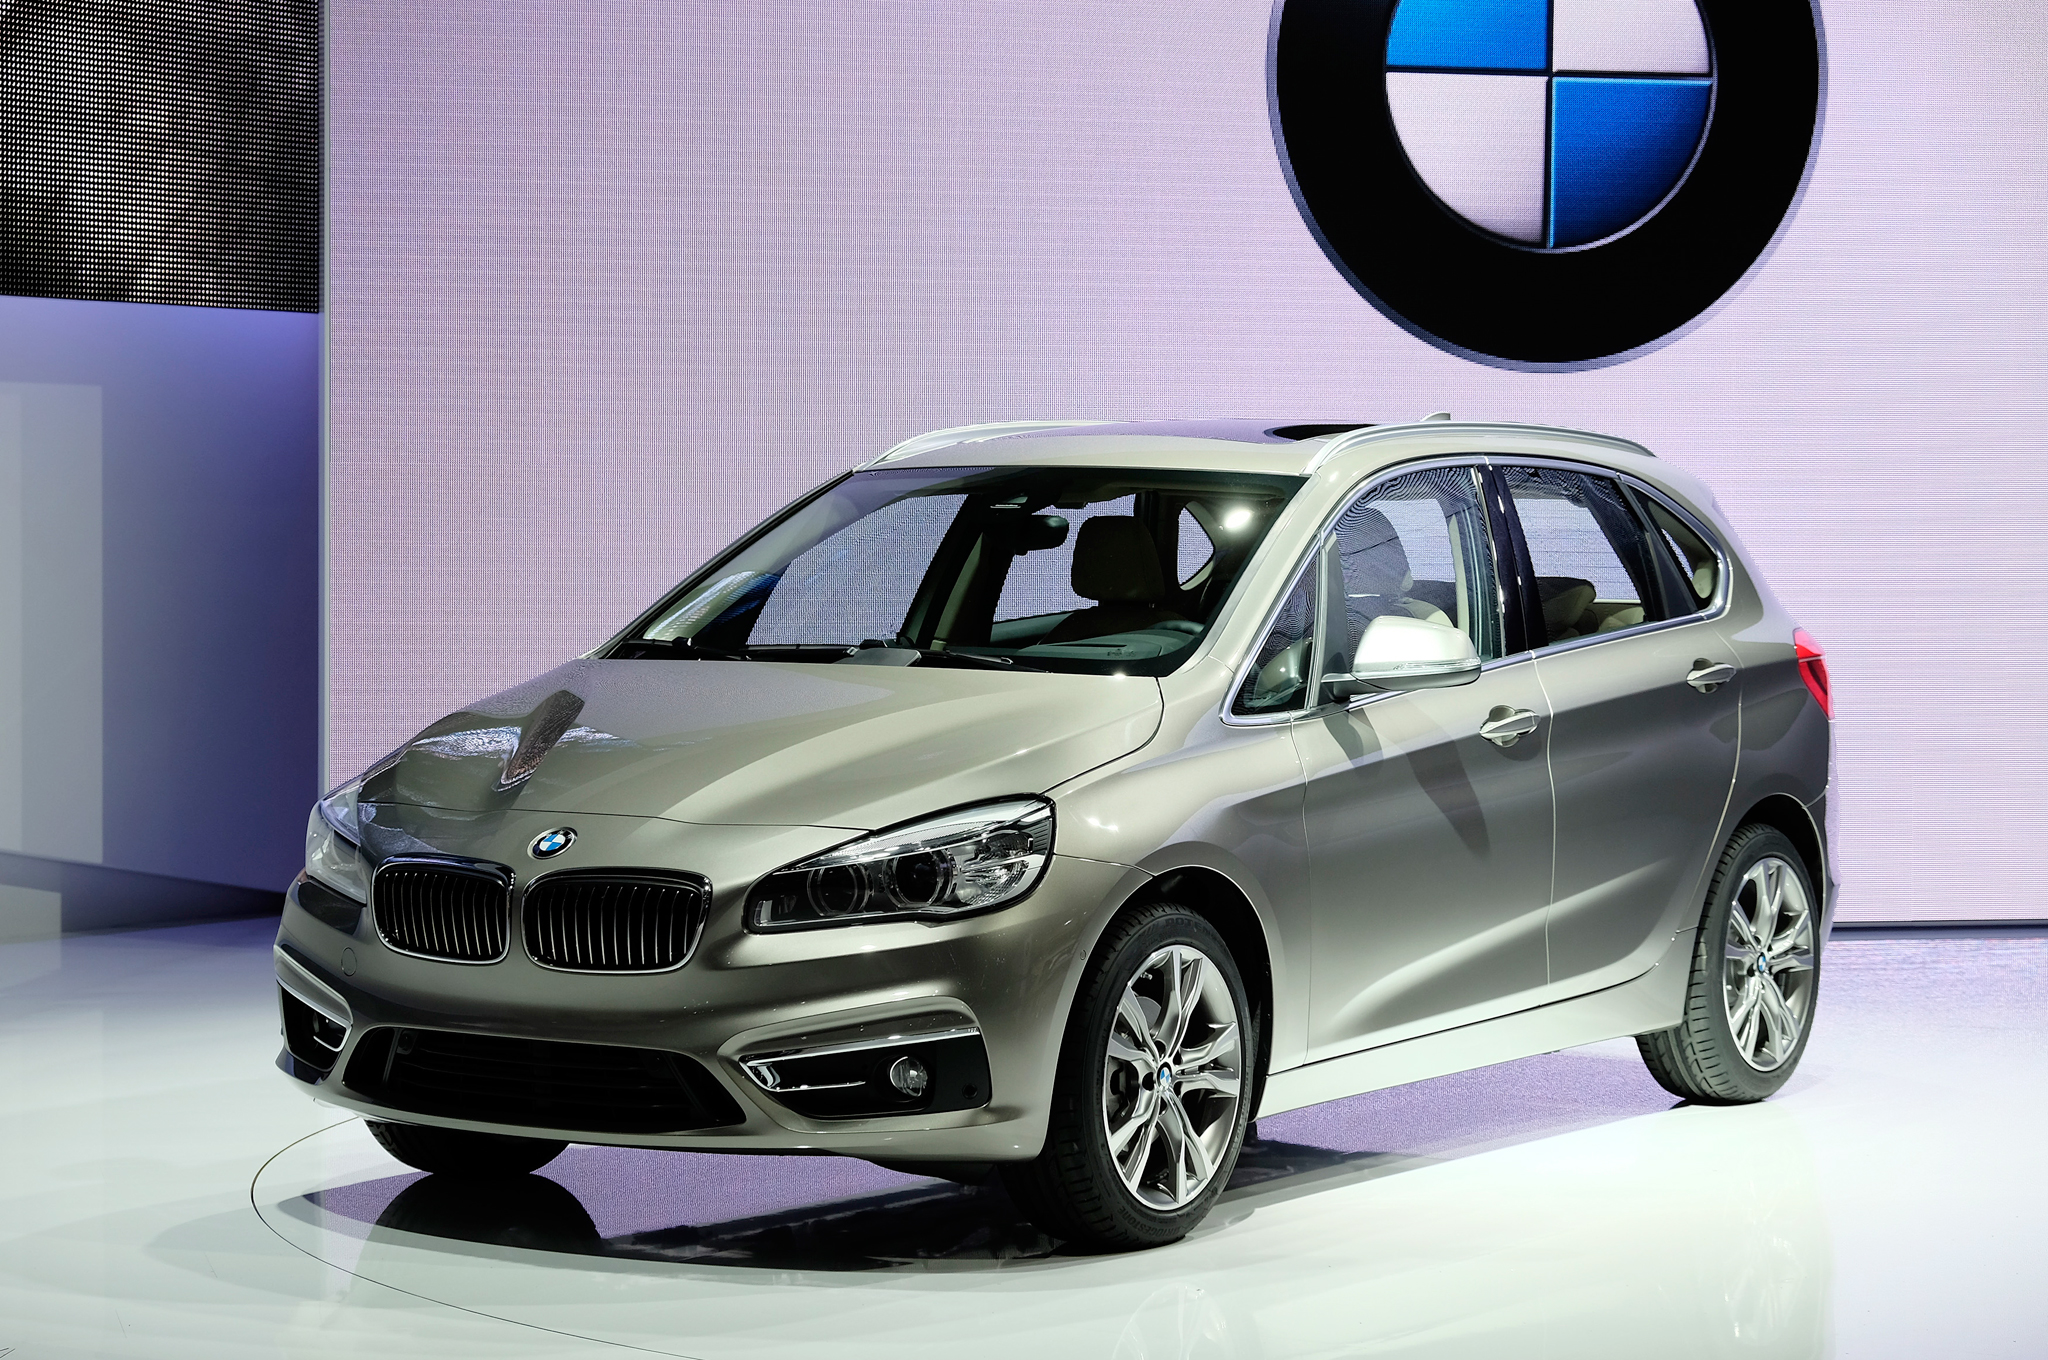 2015 Bmw 2 Series Active Tourer 225i Exterior Preview (View 9 of 11)